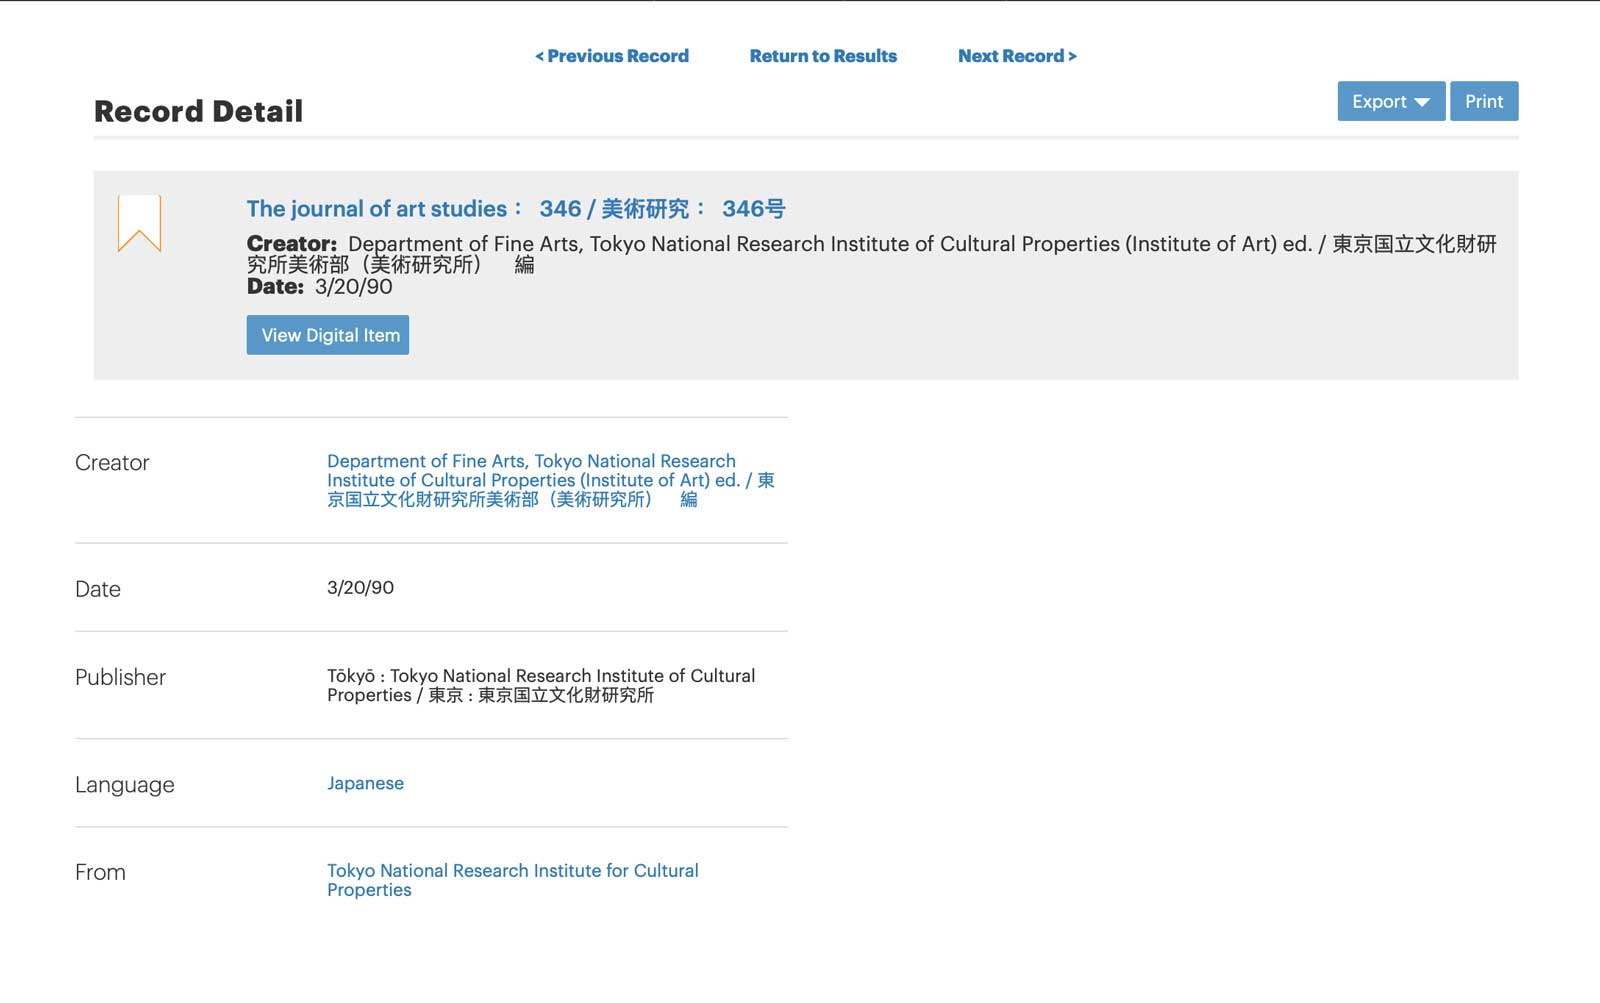 """Image 5: A record from the Tokyo National Research Institute for Cultural Properties as seen on the Portal Website. (""""The Journal of Art Studies : 346 / 美術研究 : 346号 - Getty Research Portal,"""" Getty Research Portal, accessed September 19, 2020."""